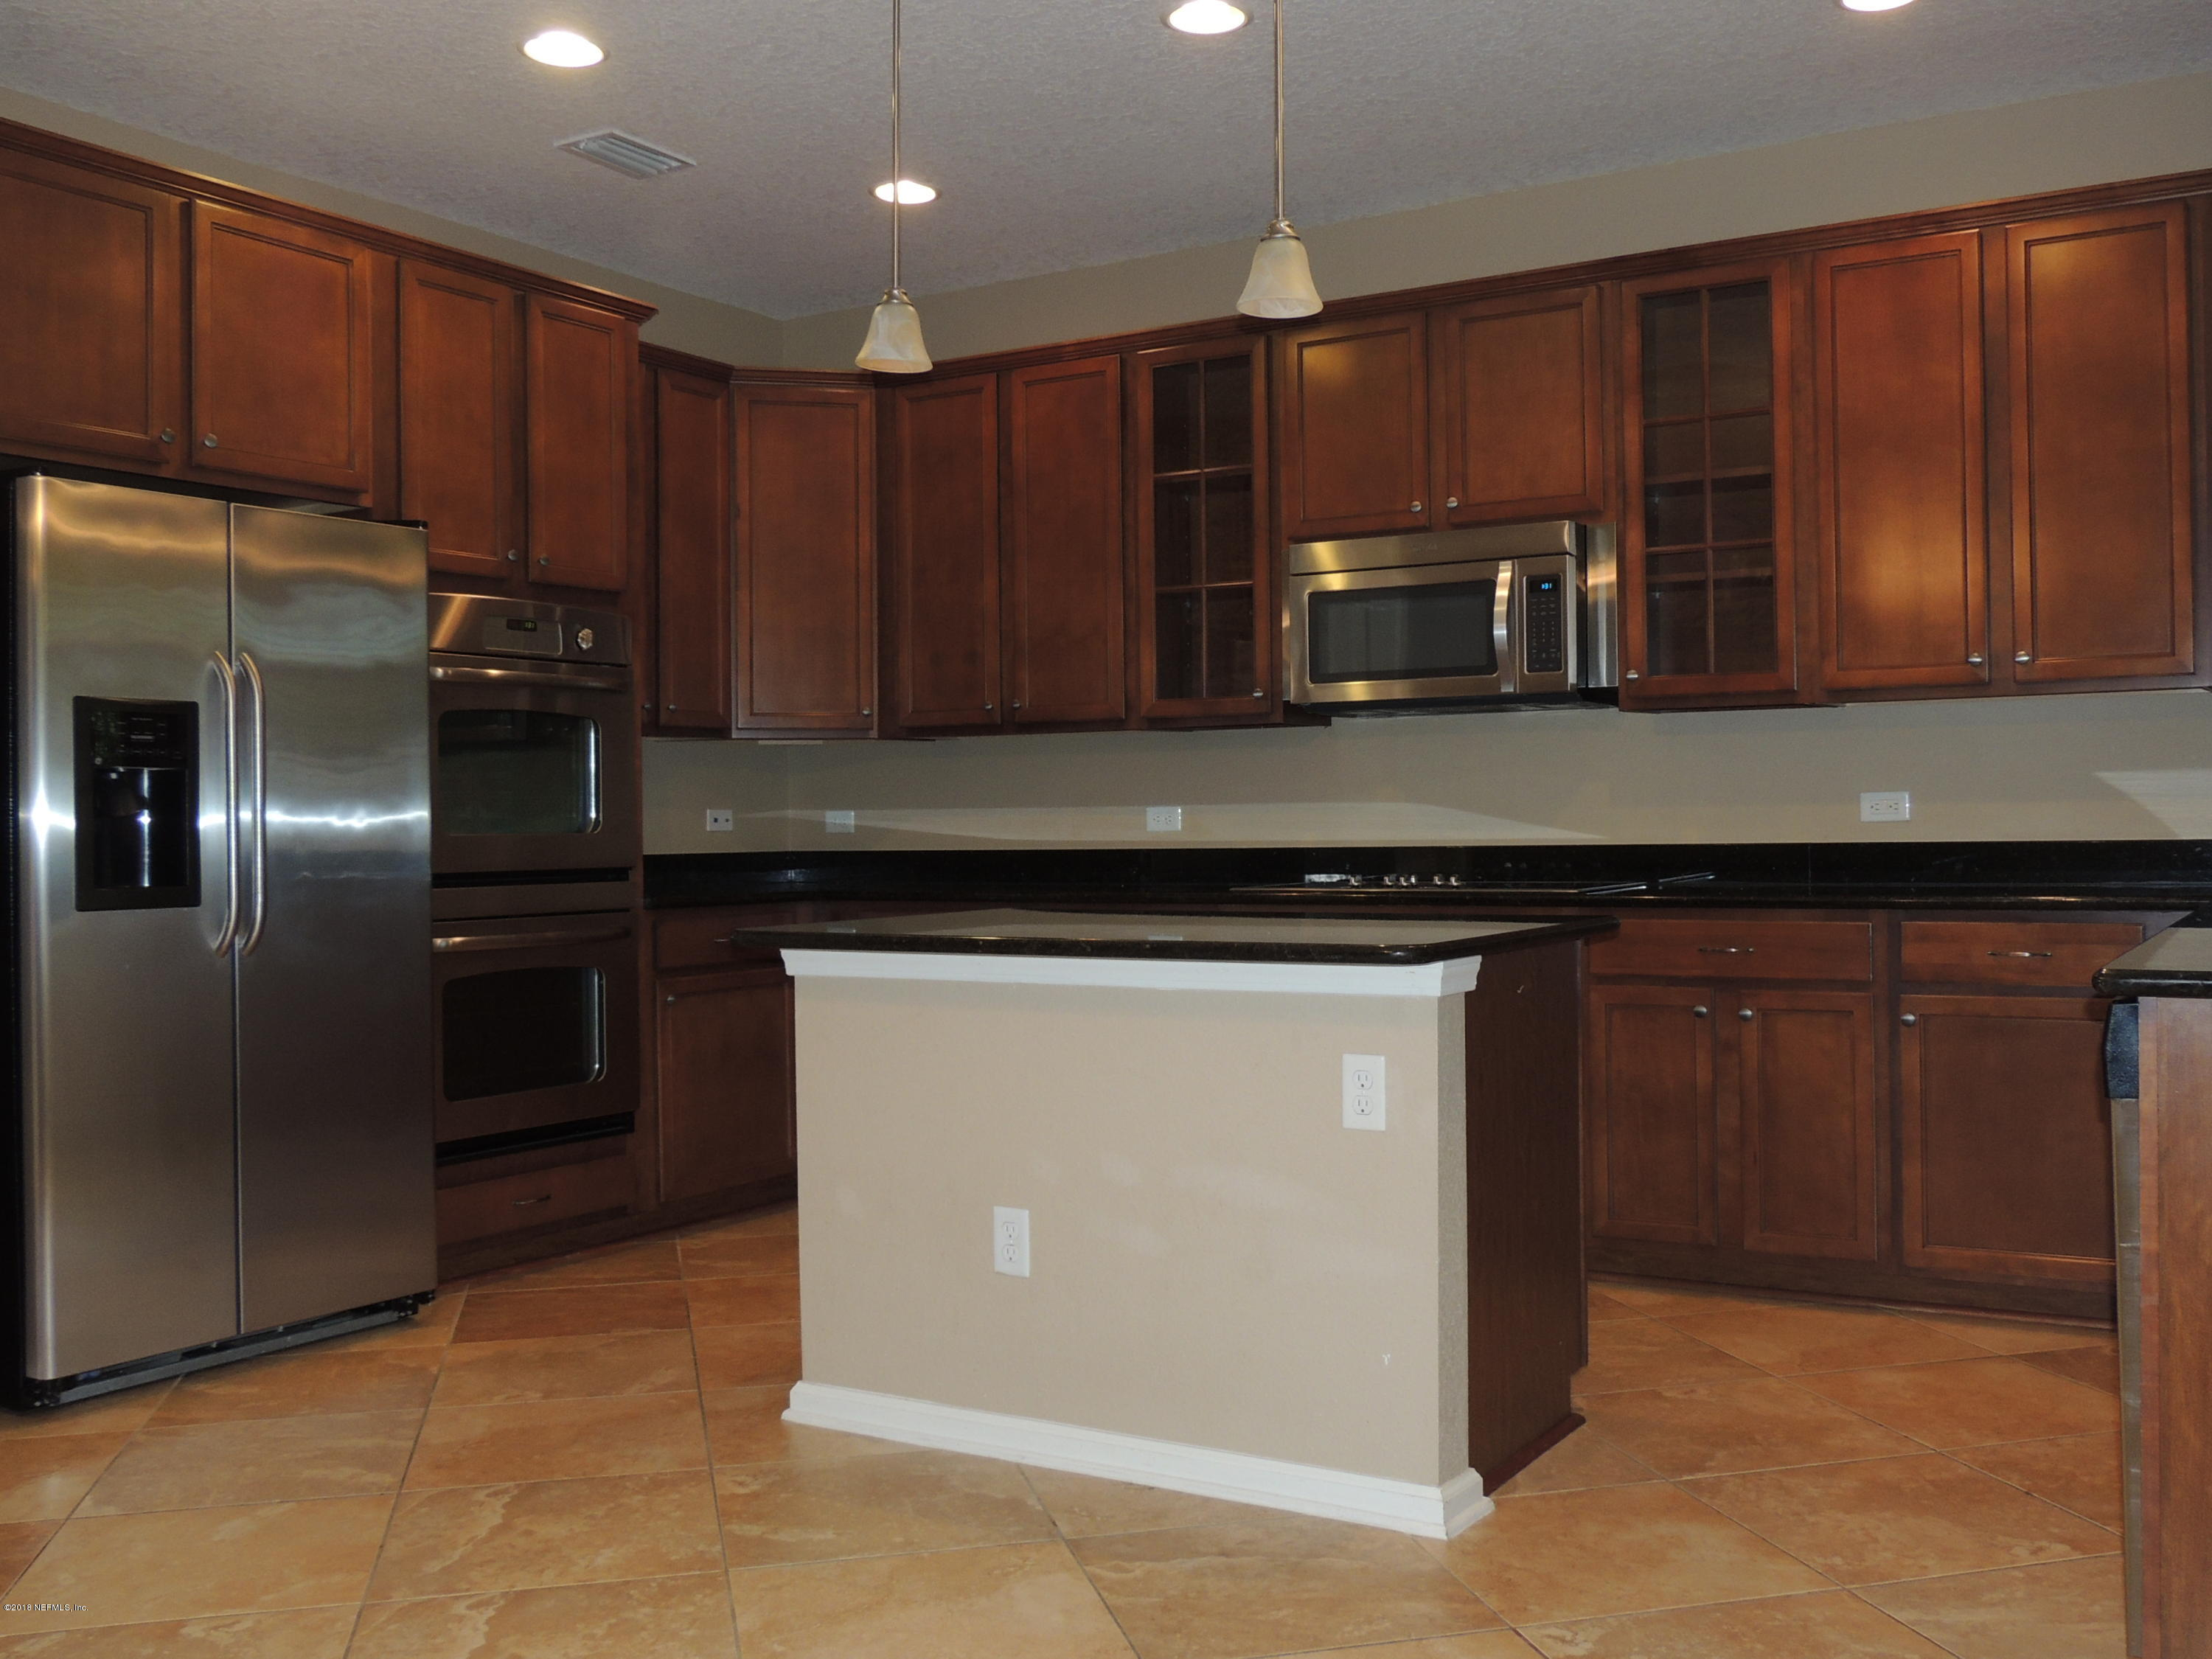 11906 FITCHWOOD, JACKSONVILLE, FLORIDA 32258, 6 Bedrooms Bedrooms, ,3 BathroomsBathrooms,Residential - single family,For sale,FITCHWOOD,952748